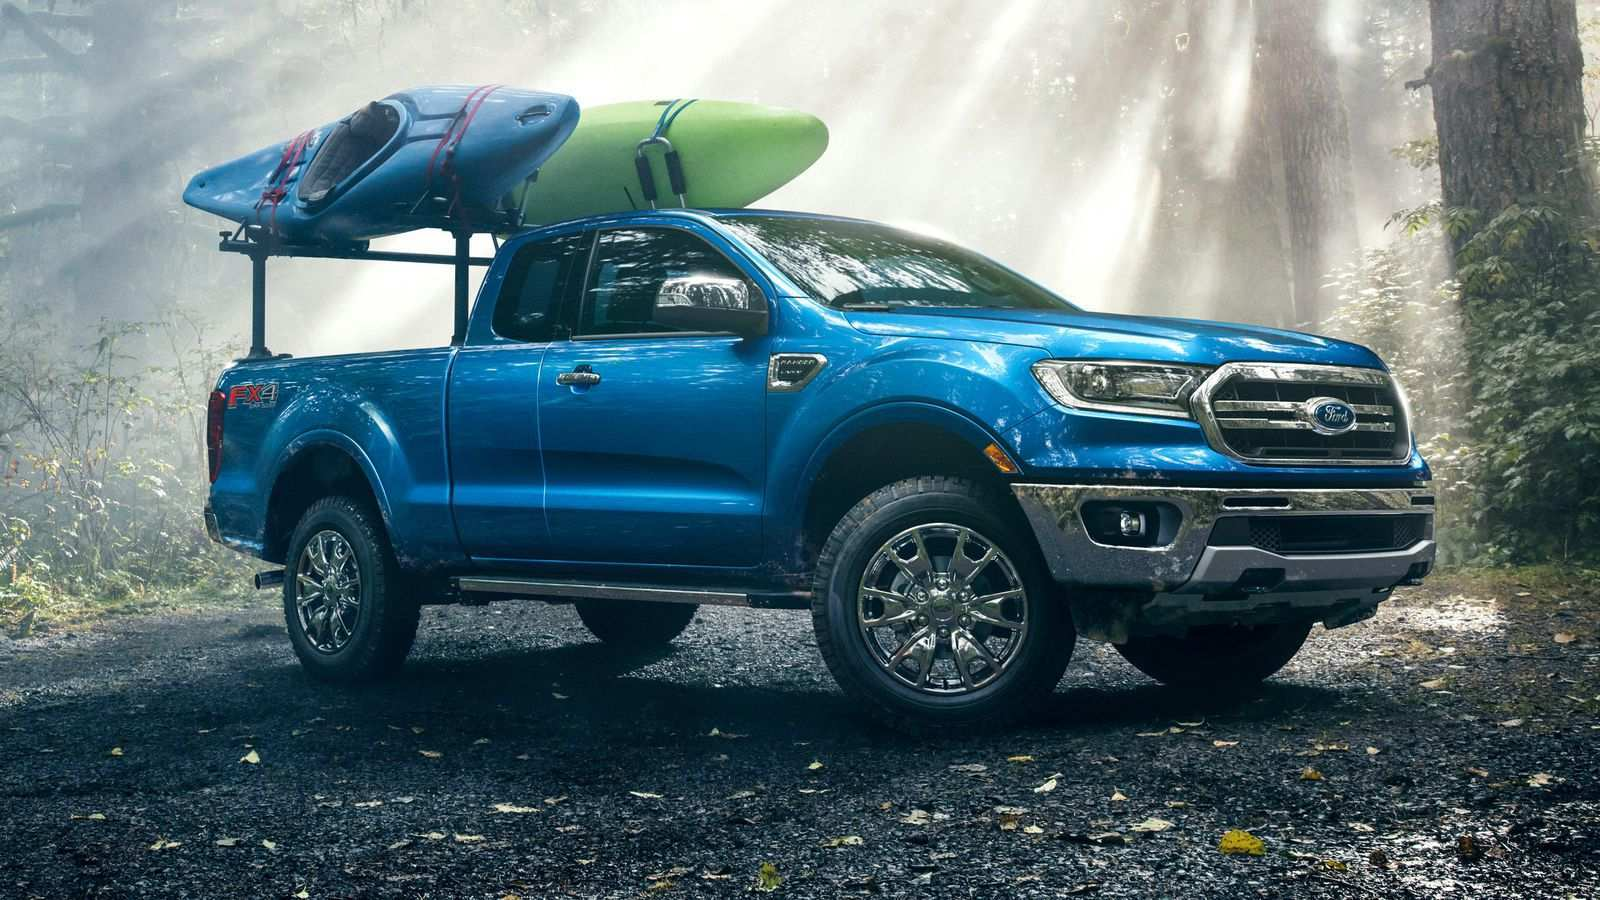 50 Concept of The Is The 2019 Ford Ranger Out Yet Review And Price Model by The Is The 2019 Ford Ranger Out Yet Review And Price